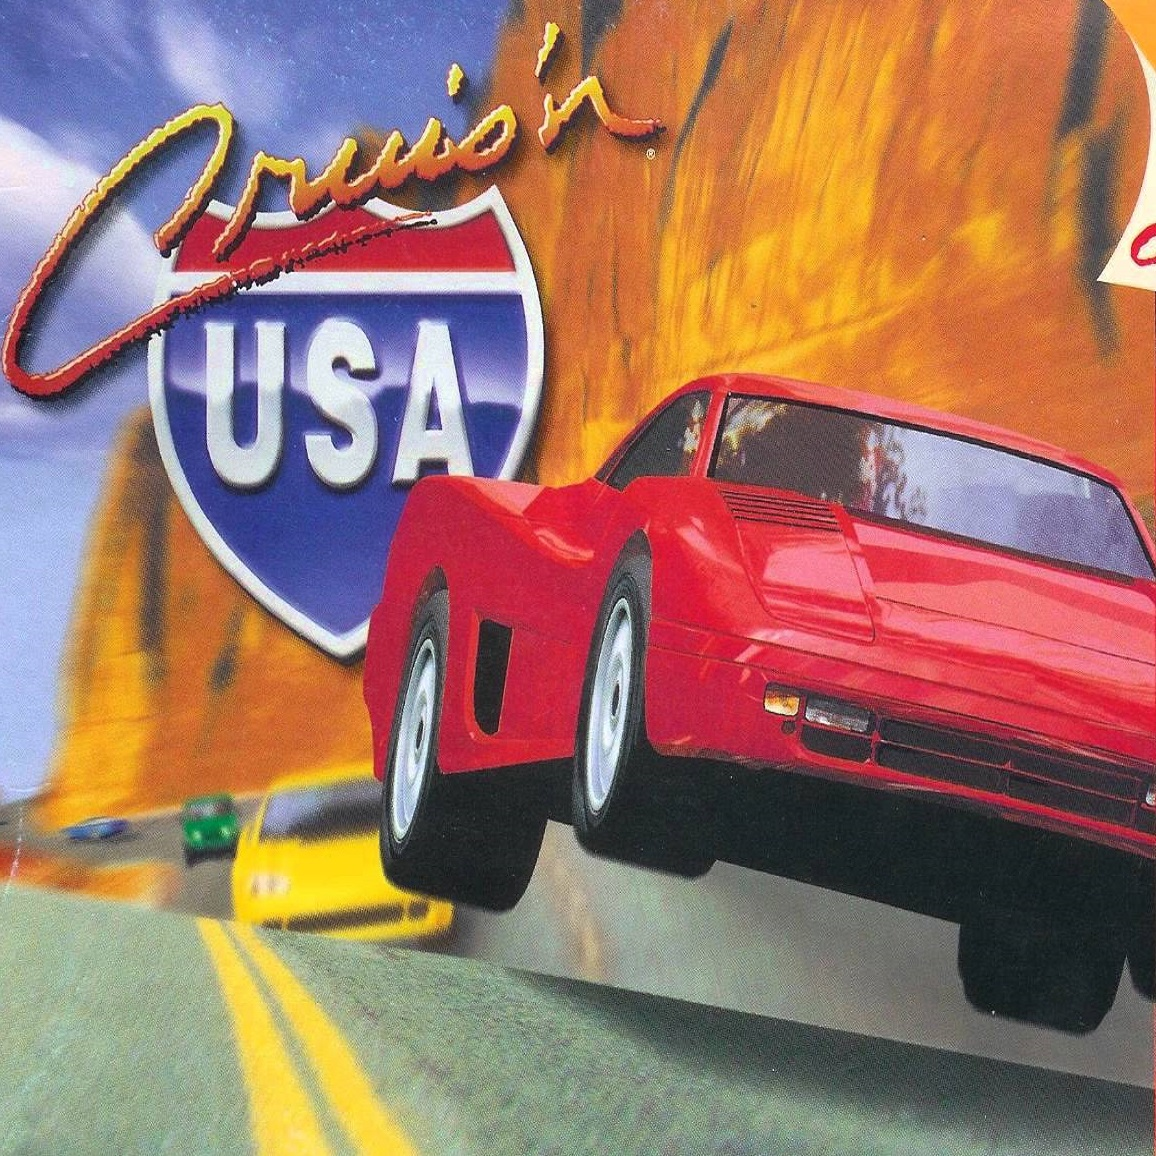 cruisn usa n64 rom